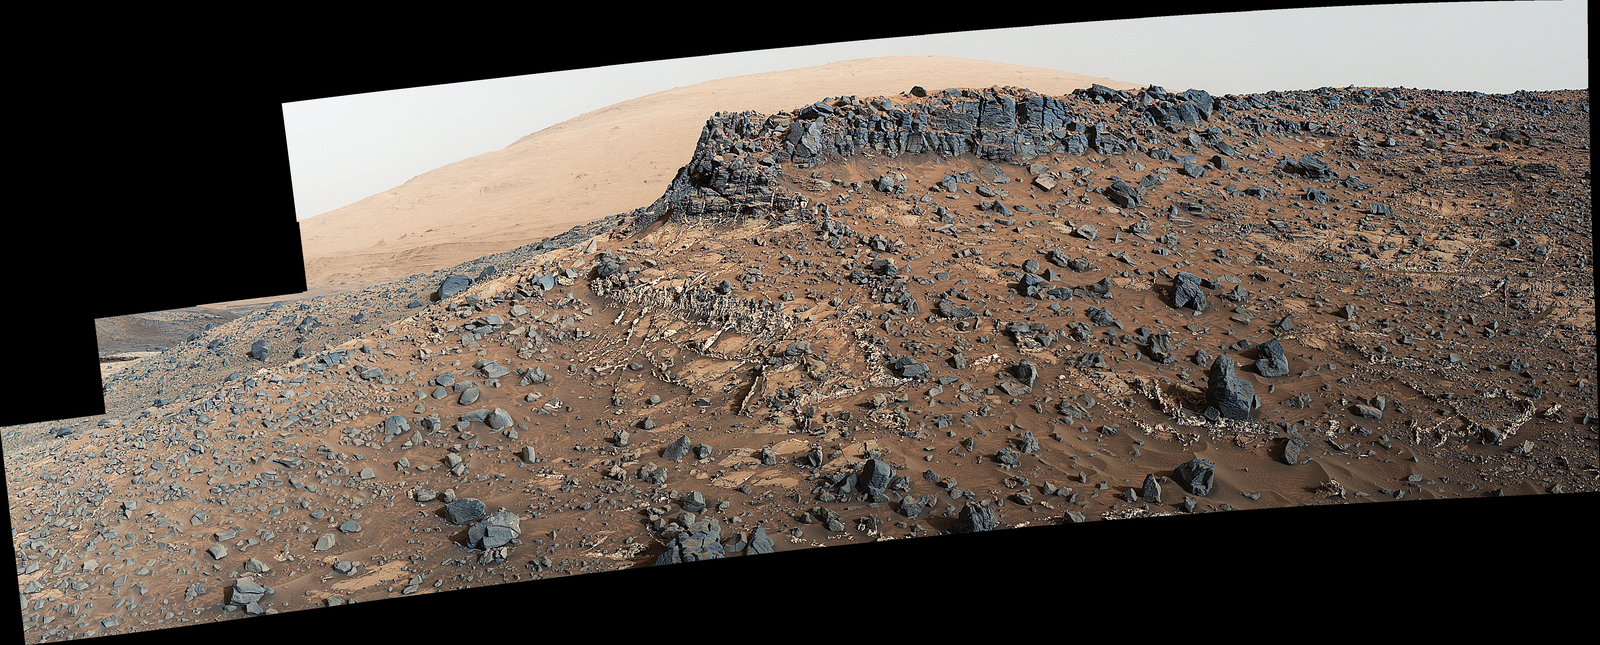 Veiny 'Garden City' Site and Surroundings on Mount Sharp, Mars